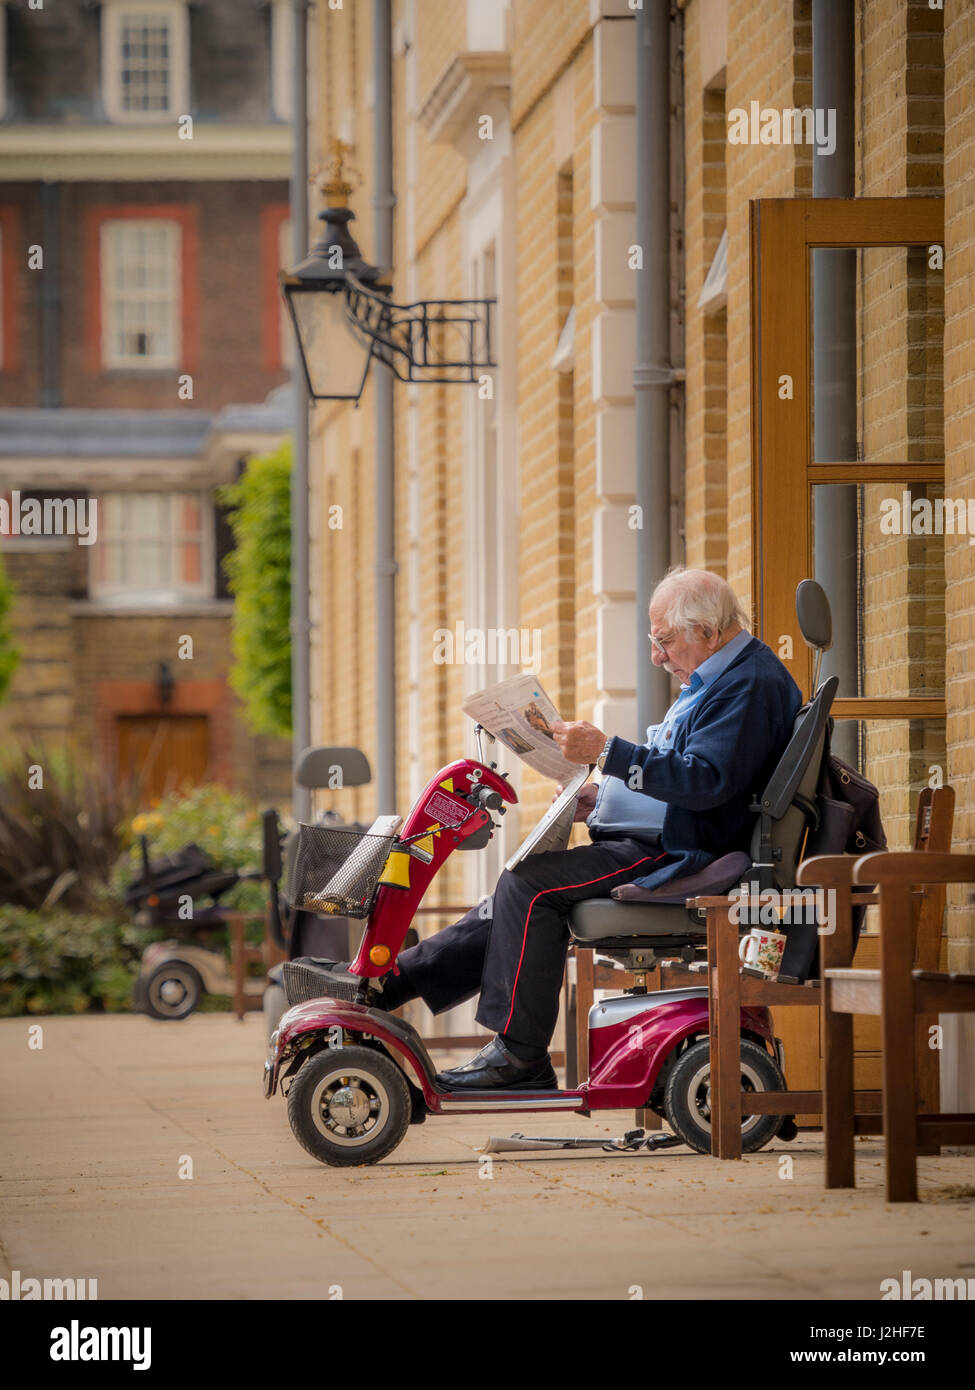 Chelsea Pensioner at Royal Hospital Chelsea, sat on mobility scooter outside apartment reading newspaper, London, - Stock Image